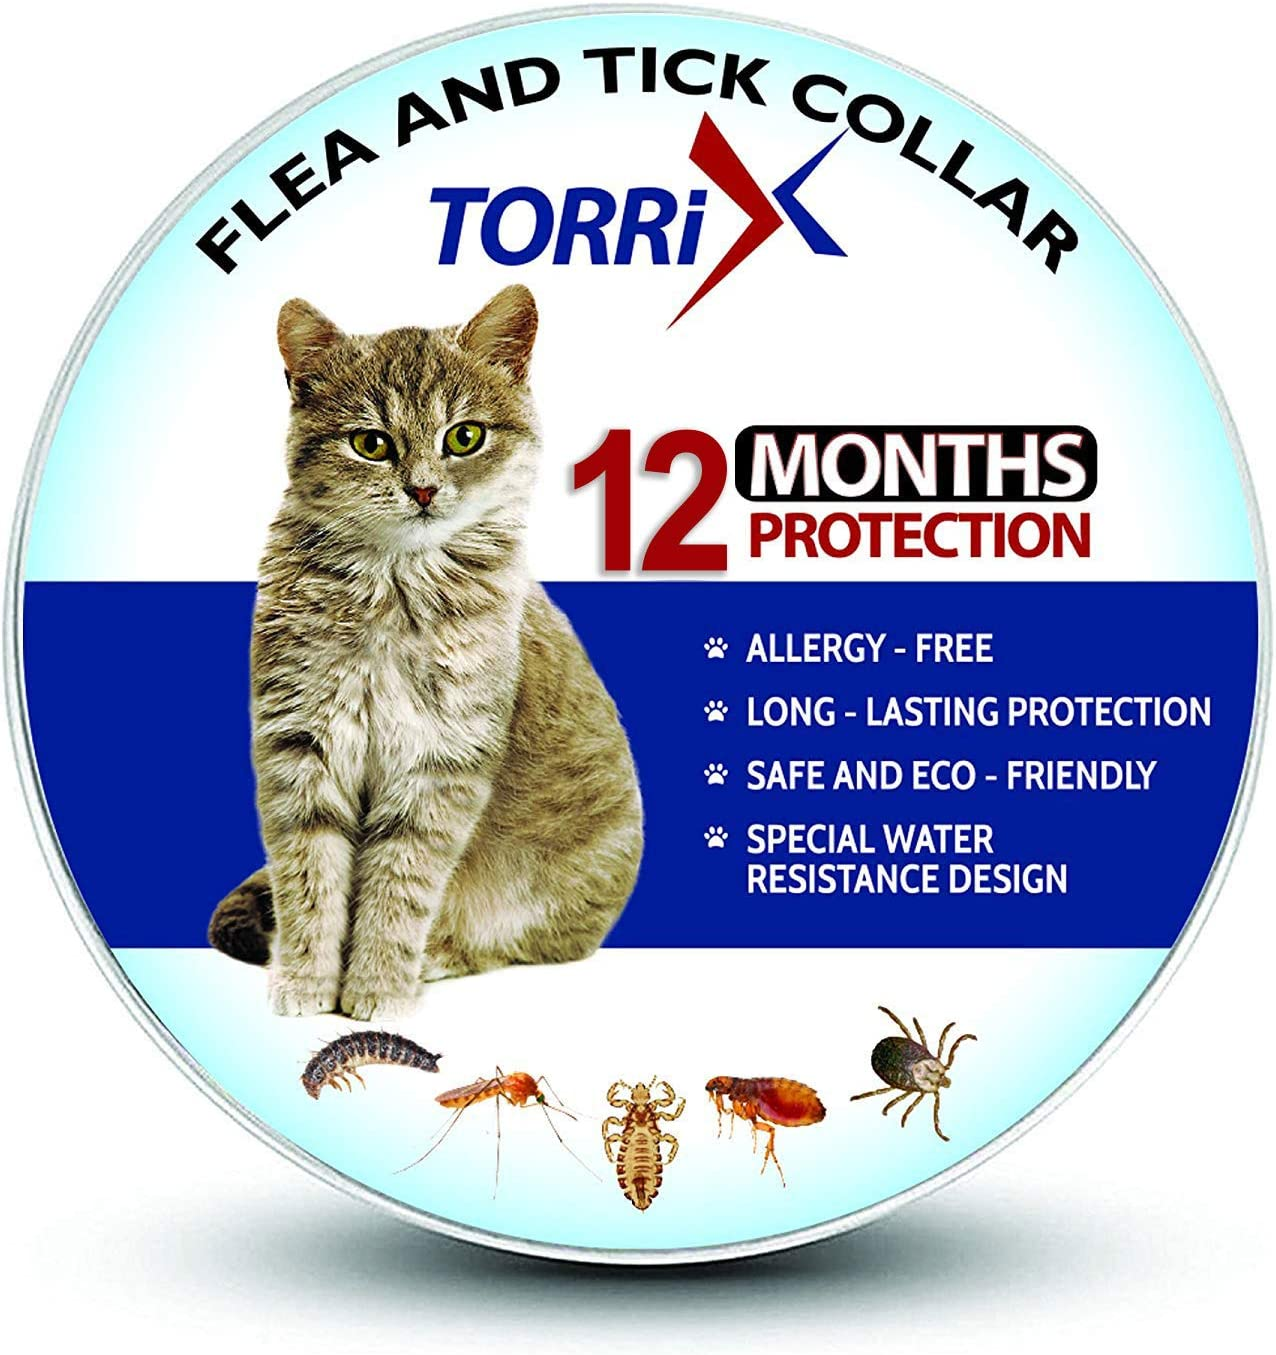 TORRIX Cats Flea and Tick Collar - 12-Month Flea Prevention Cat Collar - Adjustable and Waterproof Cat Flea and Tick Control [2020 Upgrade Version]